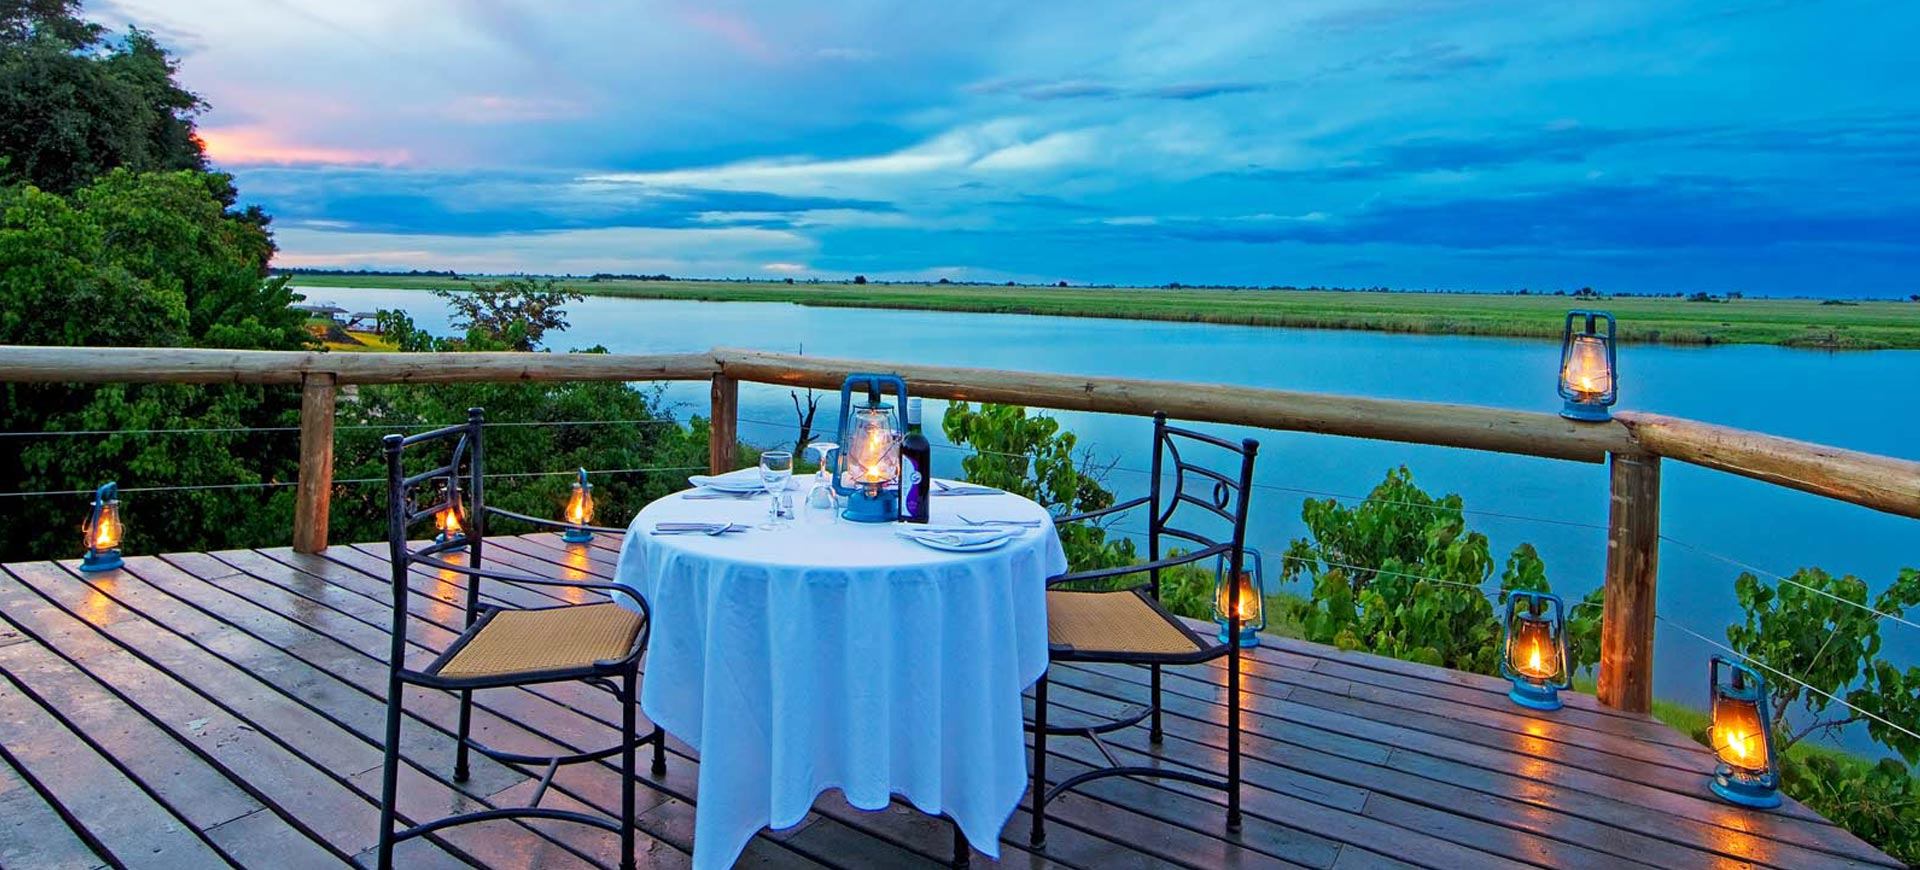 Chobe Game Lodge Botswana